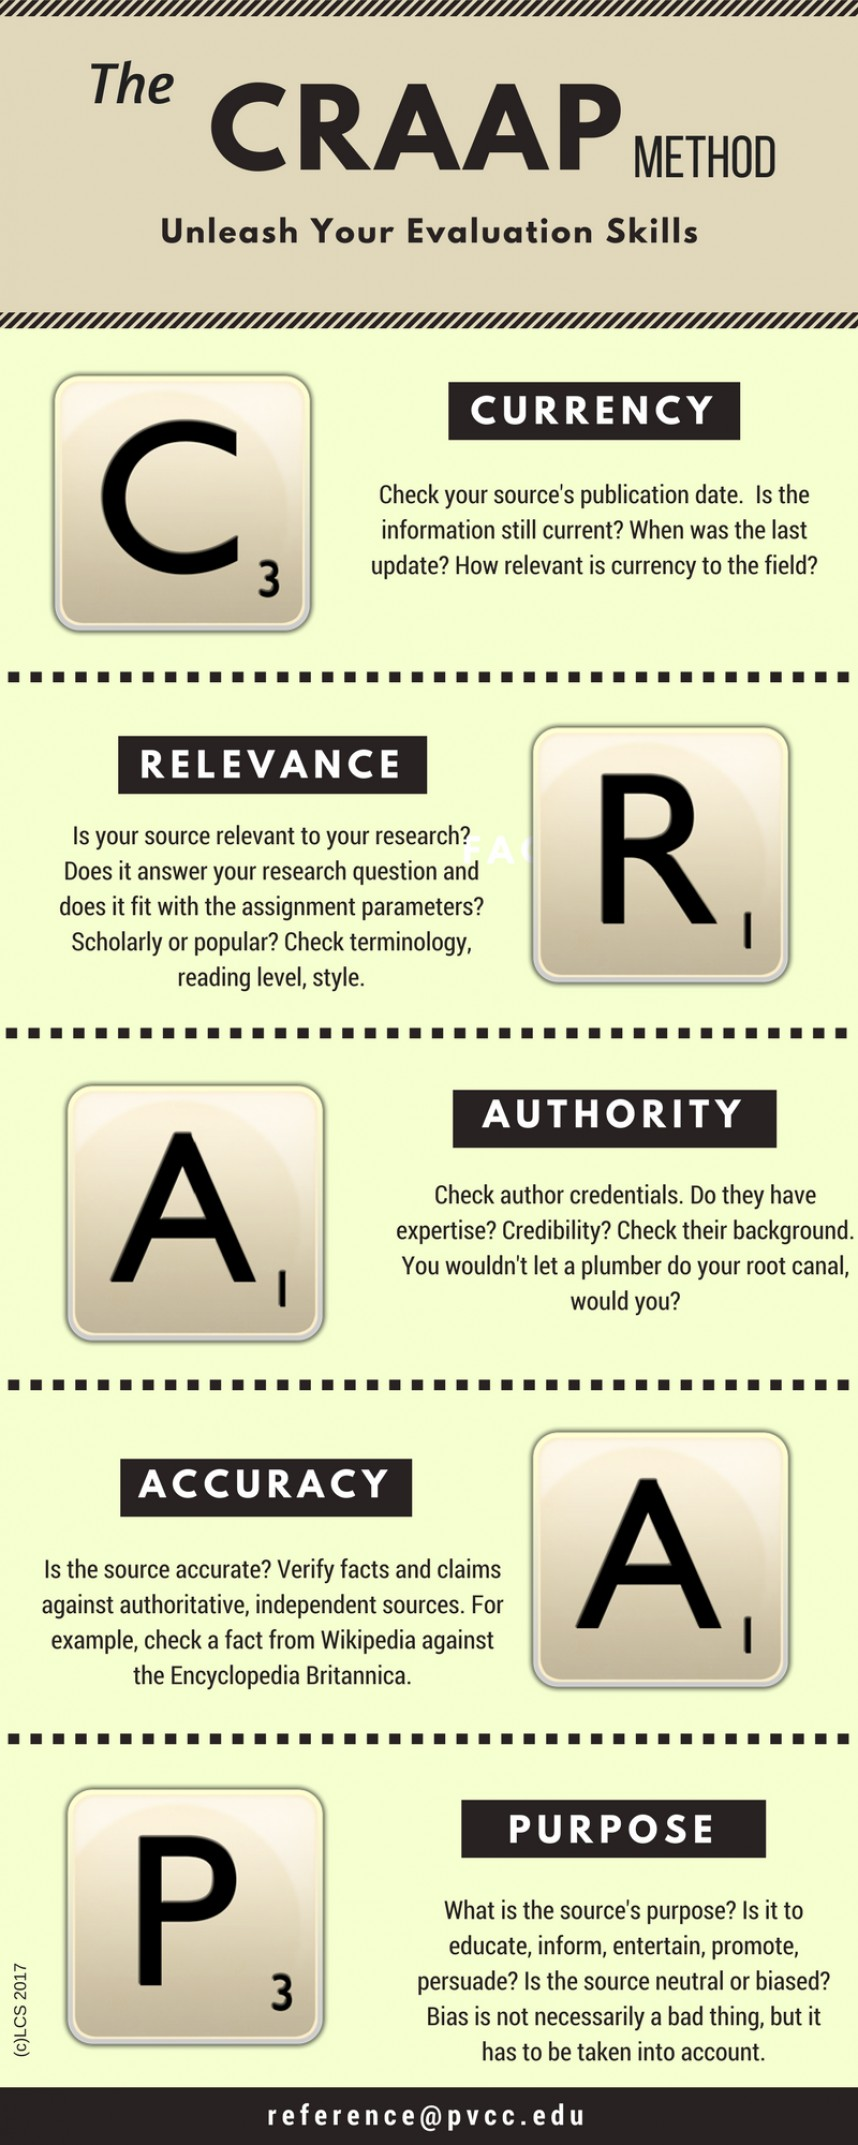 012 Craap Method Research Paper Credible Sources For Awful Papers List Of High School